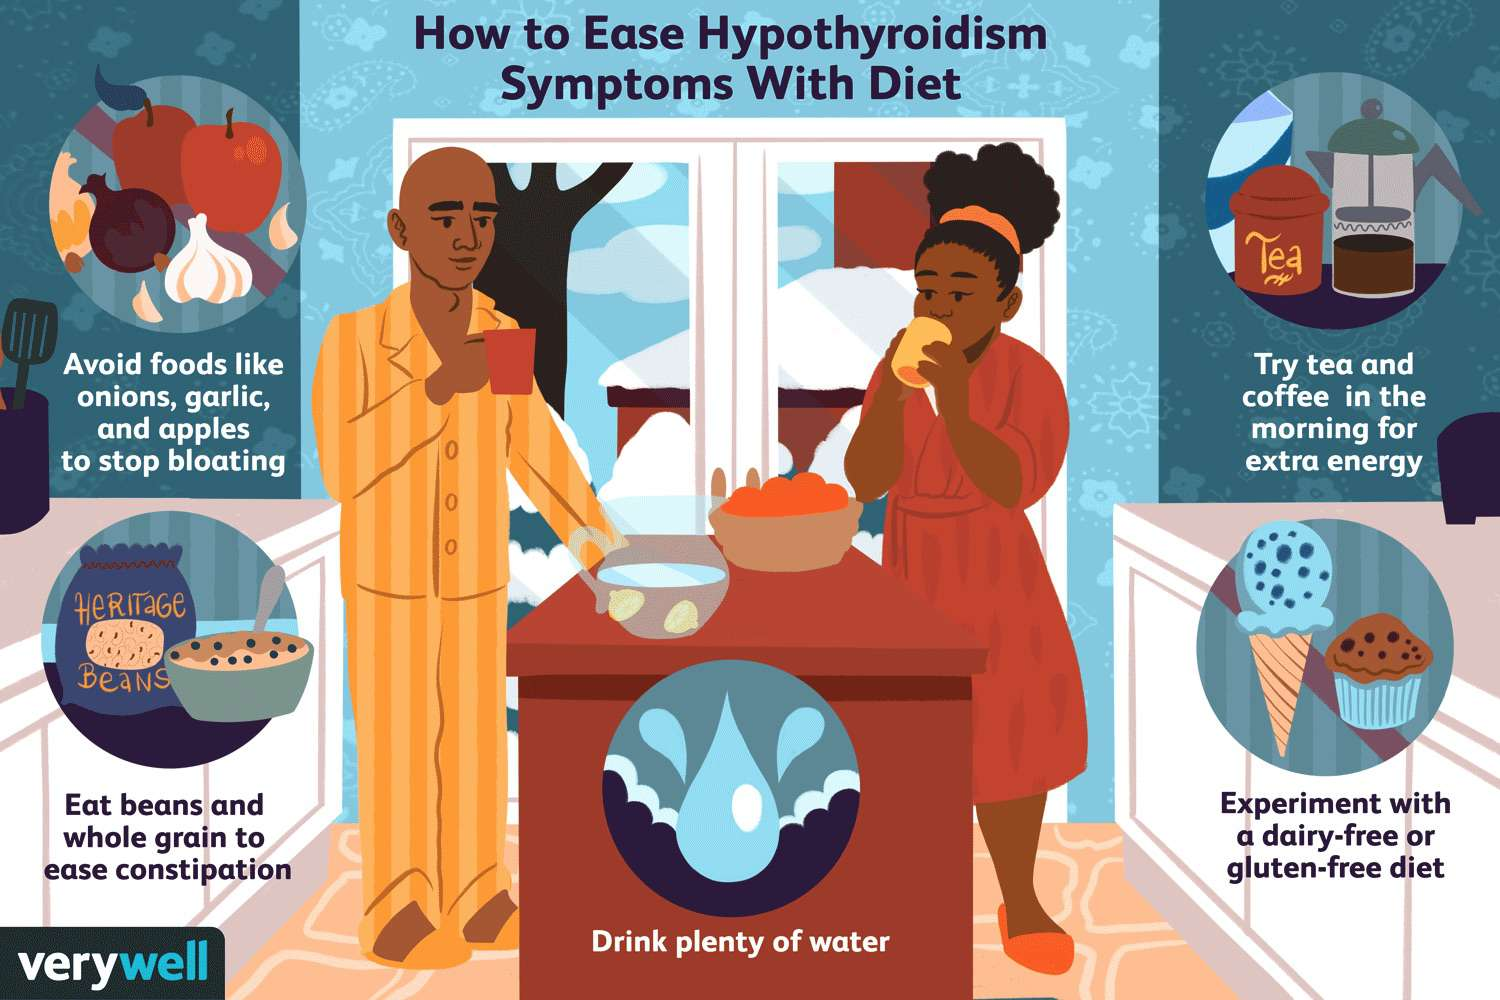 how to ease hypothyroidism symptoms with diet